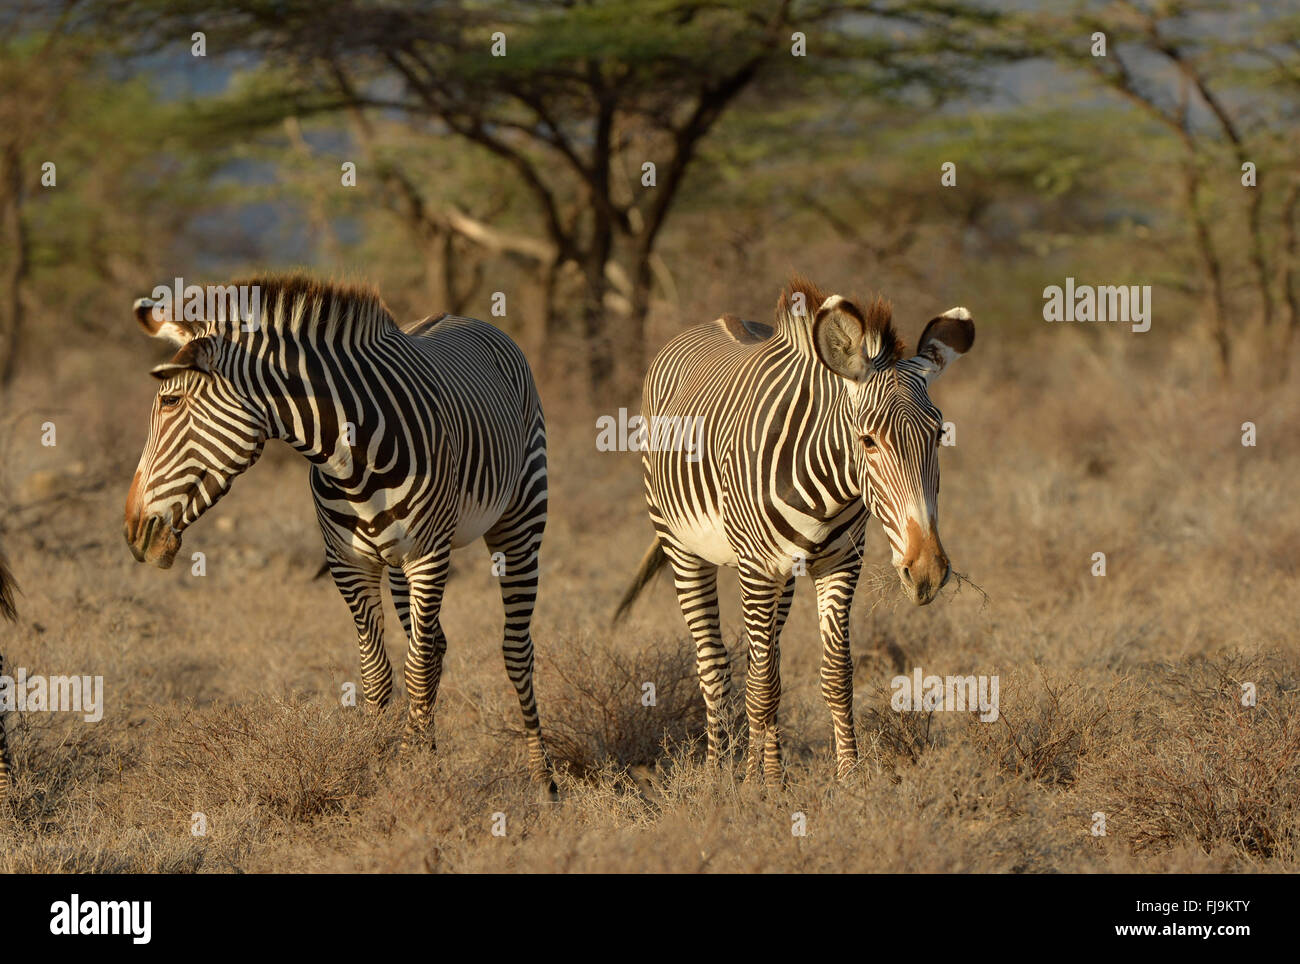 Grevy's Zebra (Equus grevyi) two standing together in dry scubland, Shaba National Reserve, Kenya, October Stock Photo